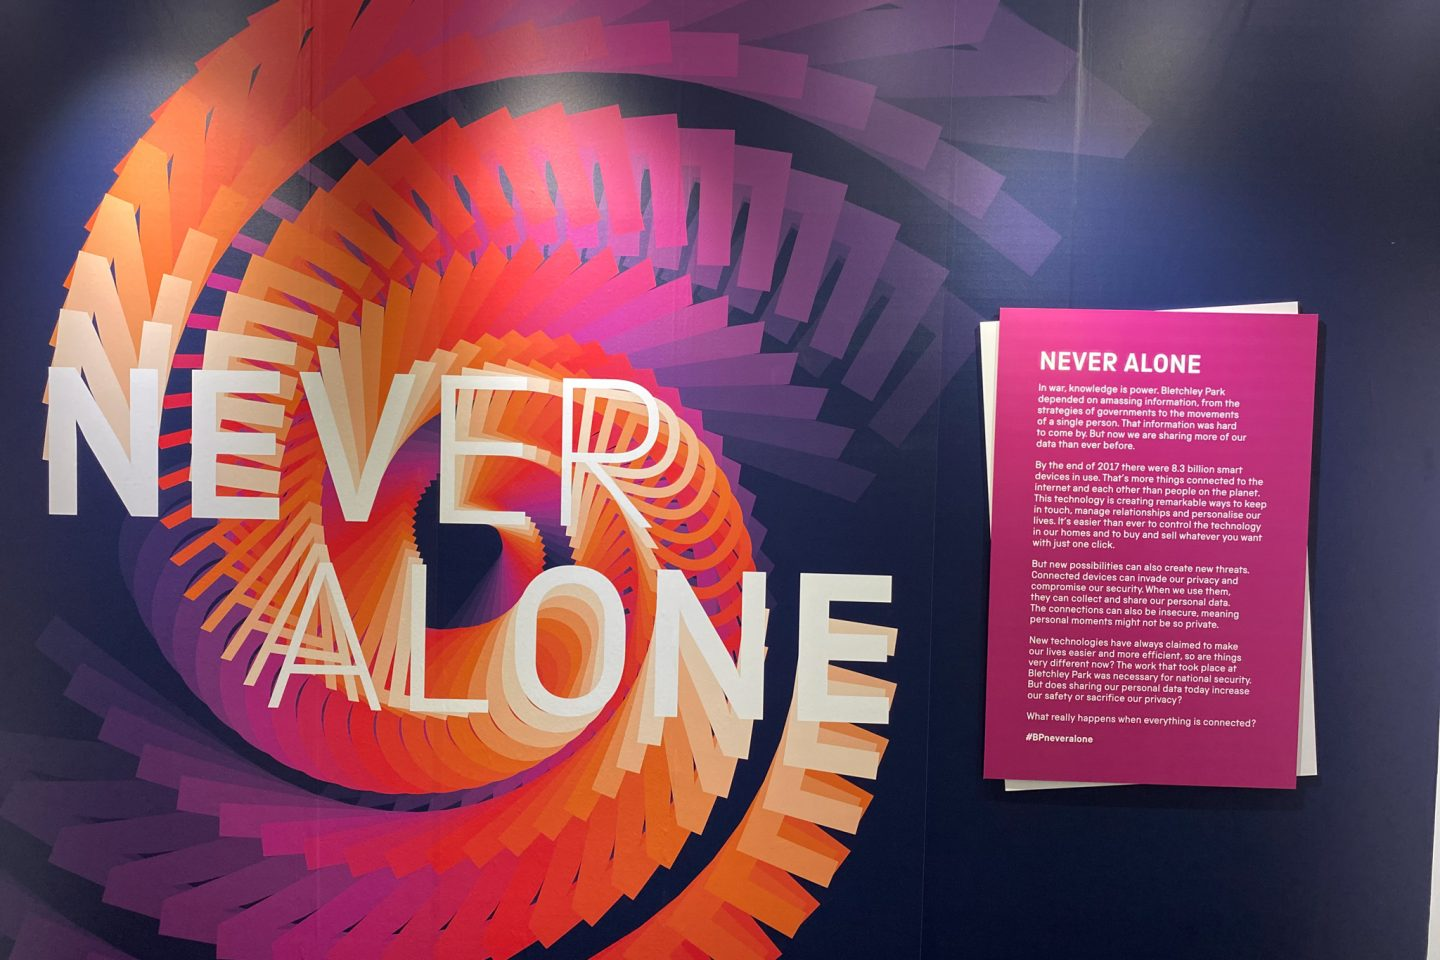 Never Alone Exhibition at Bletchley Park